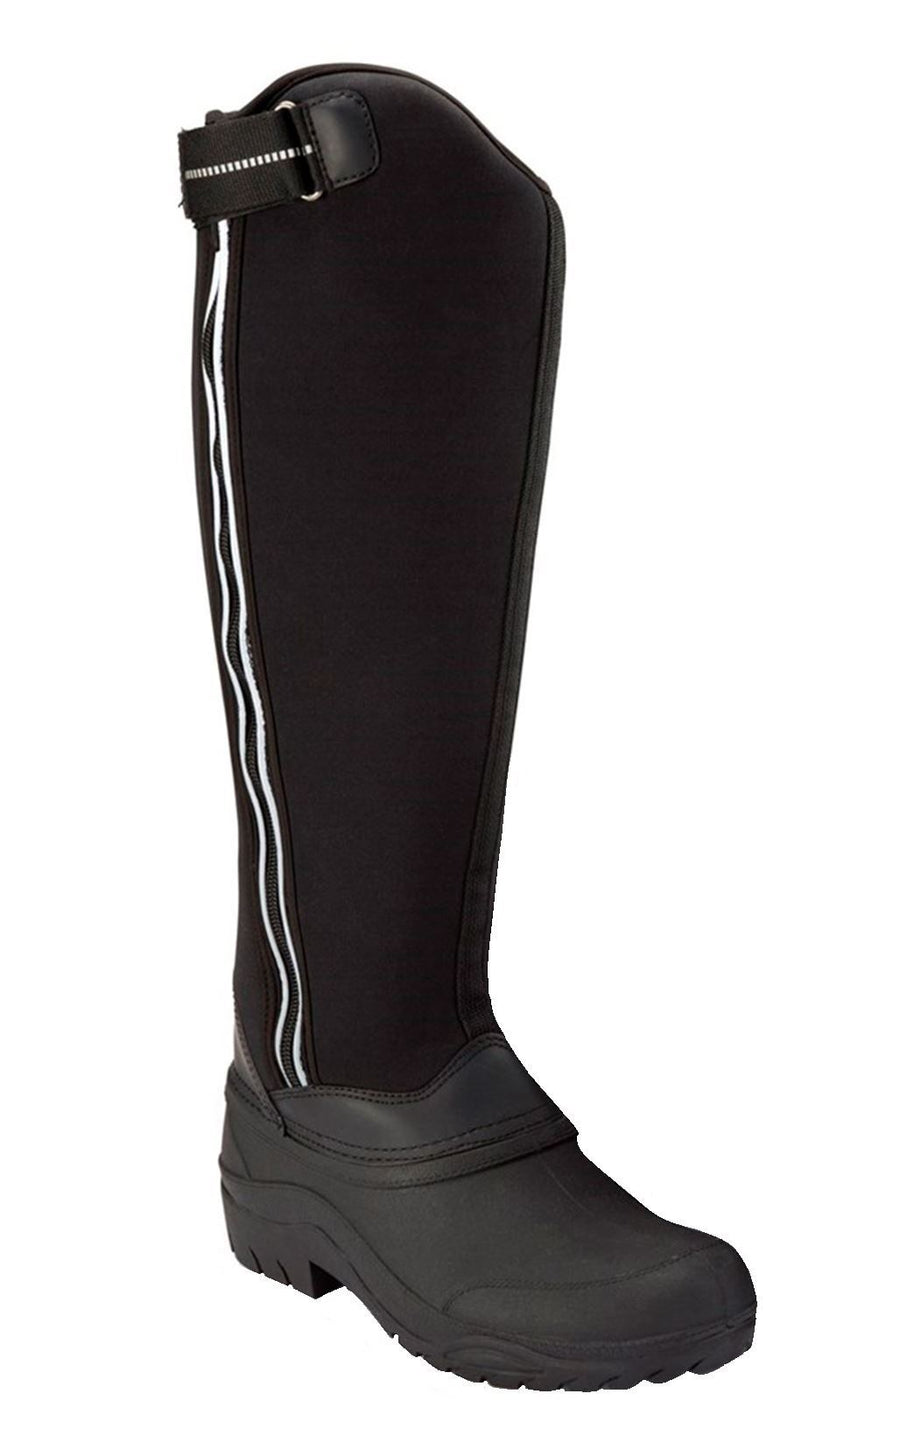 White Horse Equestrian Neo Vis Boots Black